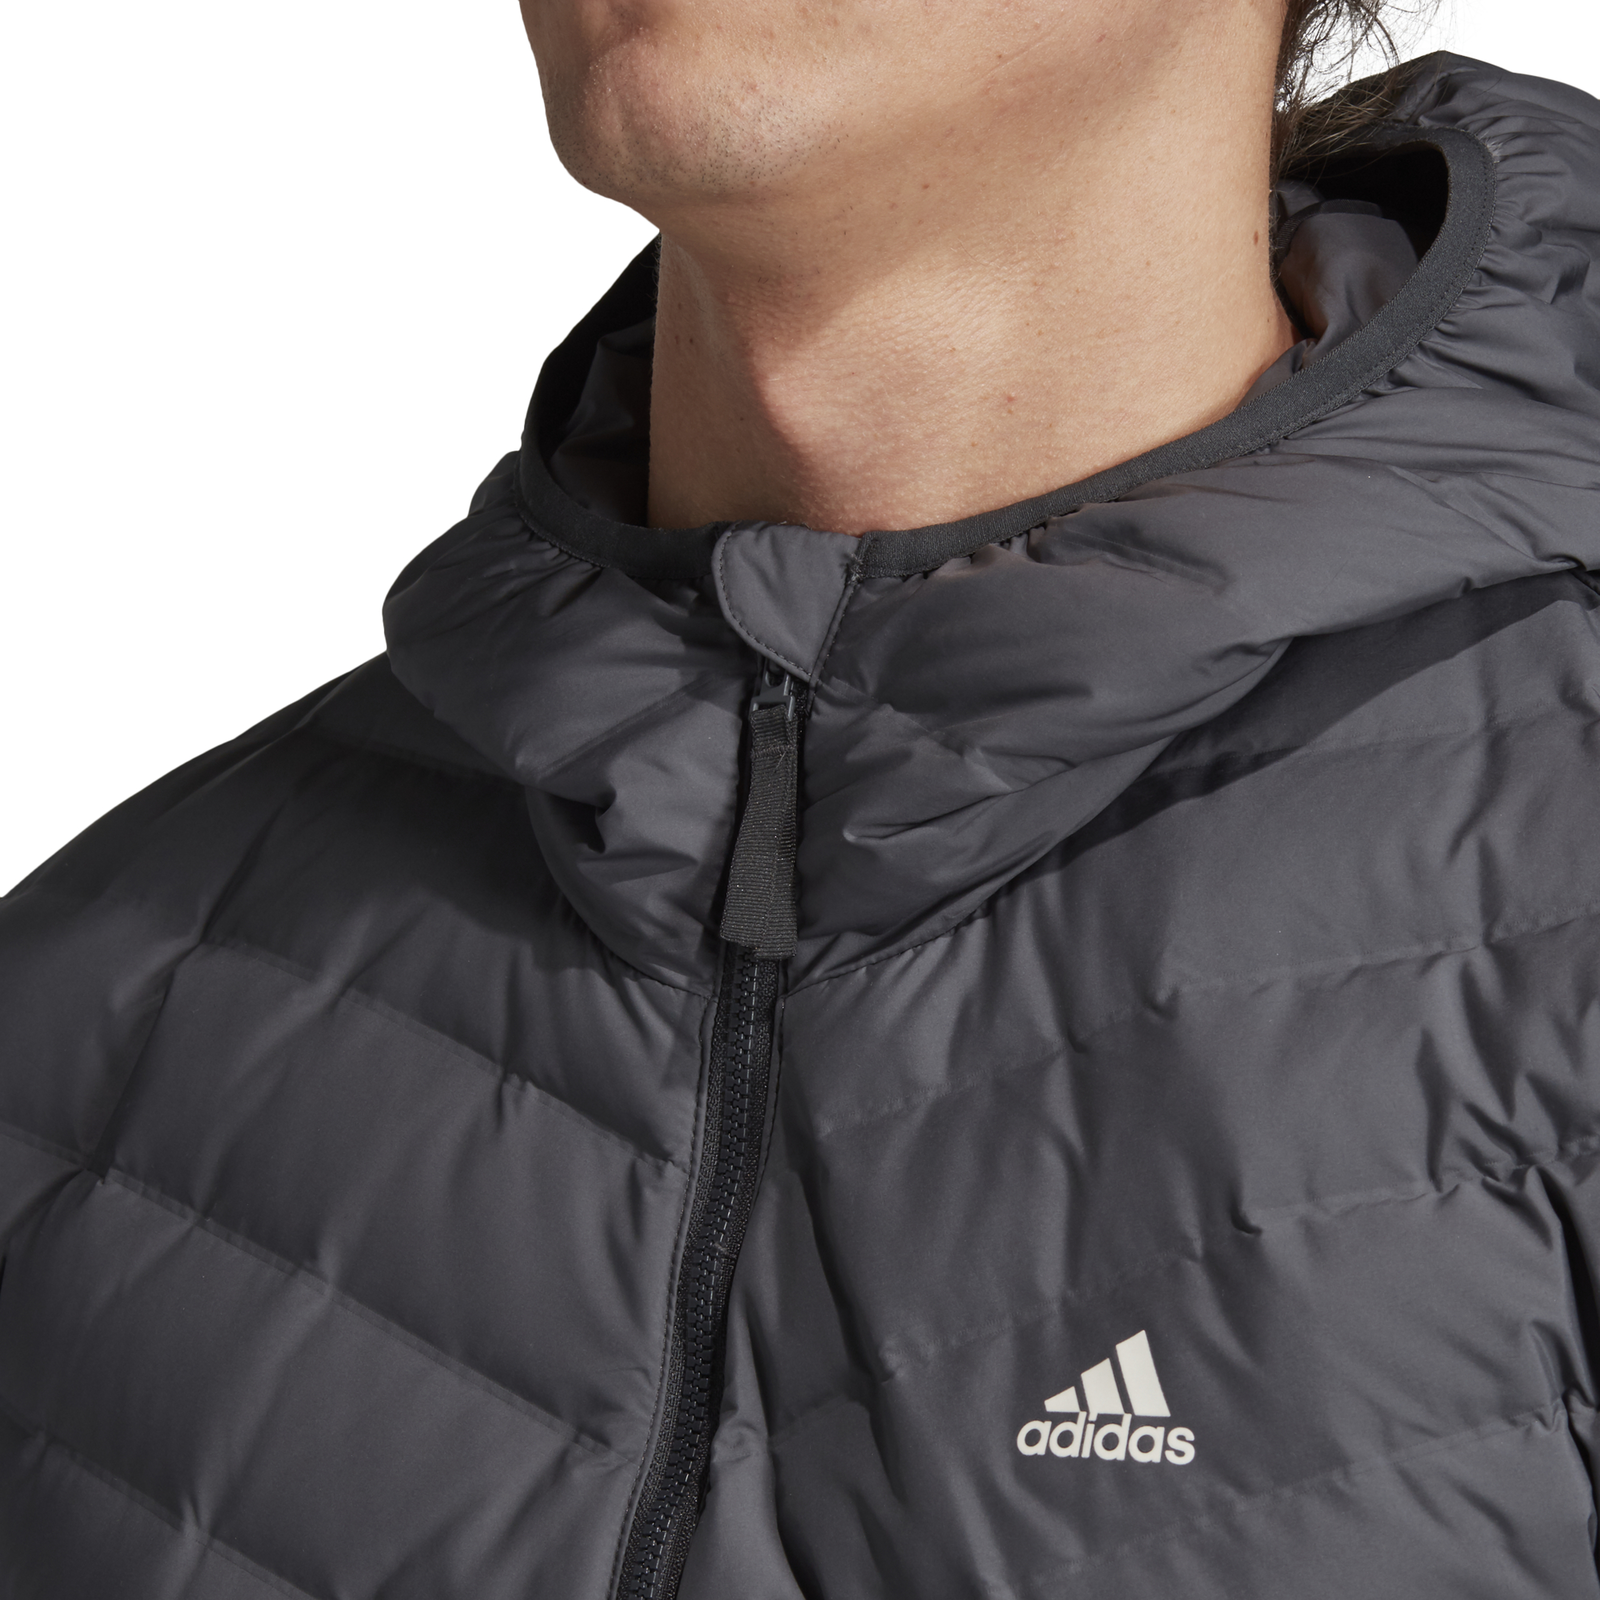 Details about Adidas Performance Men's down Jacket Varilite Soft 3S Soft Hooded Carbon